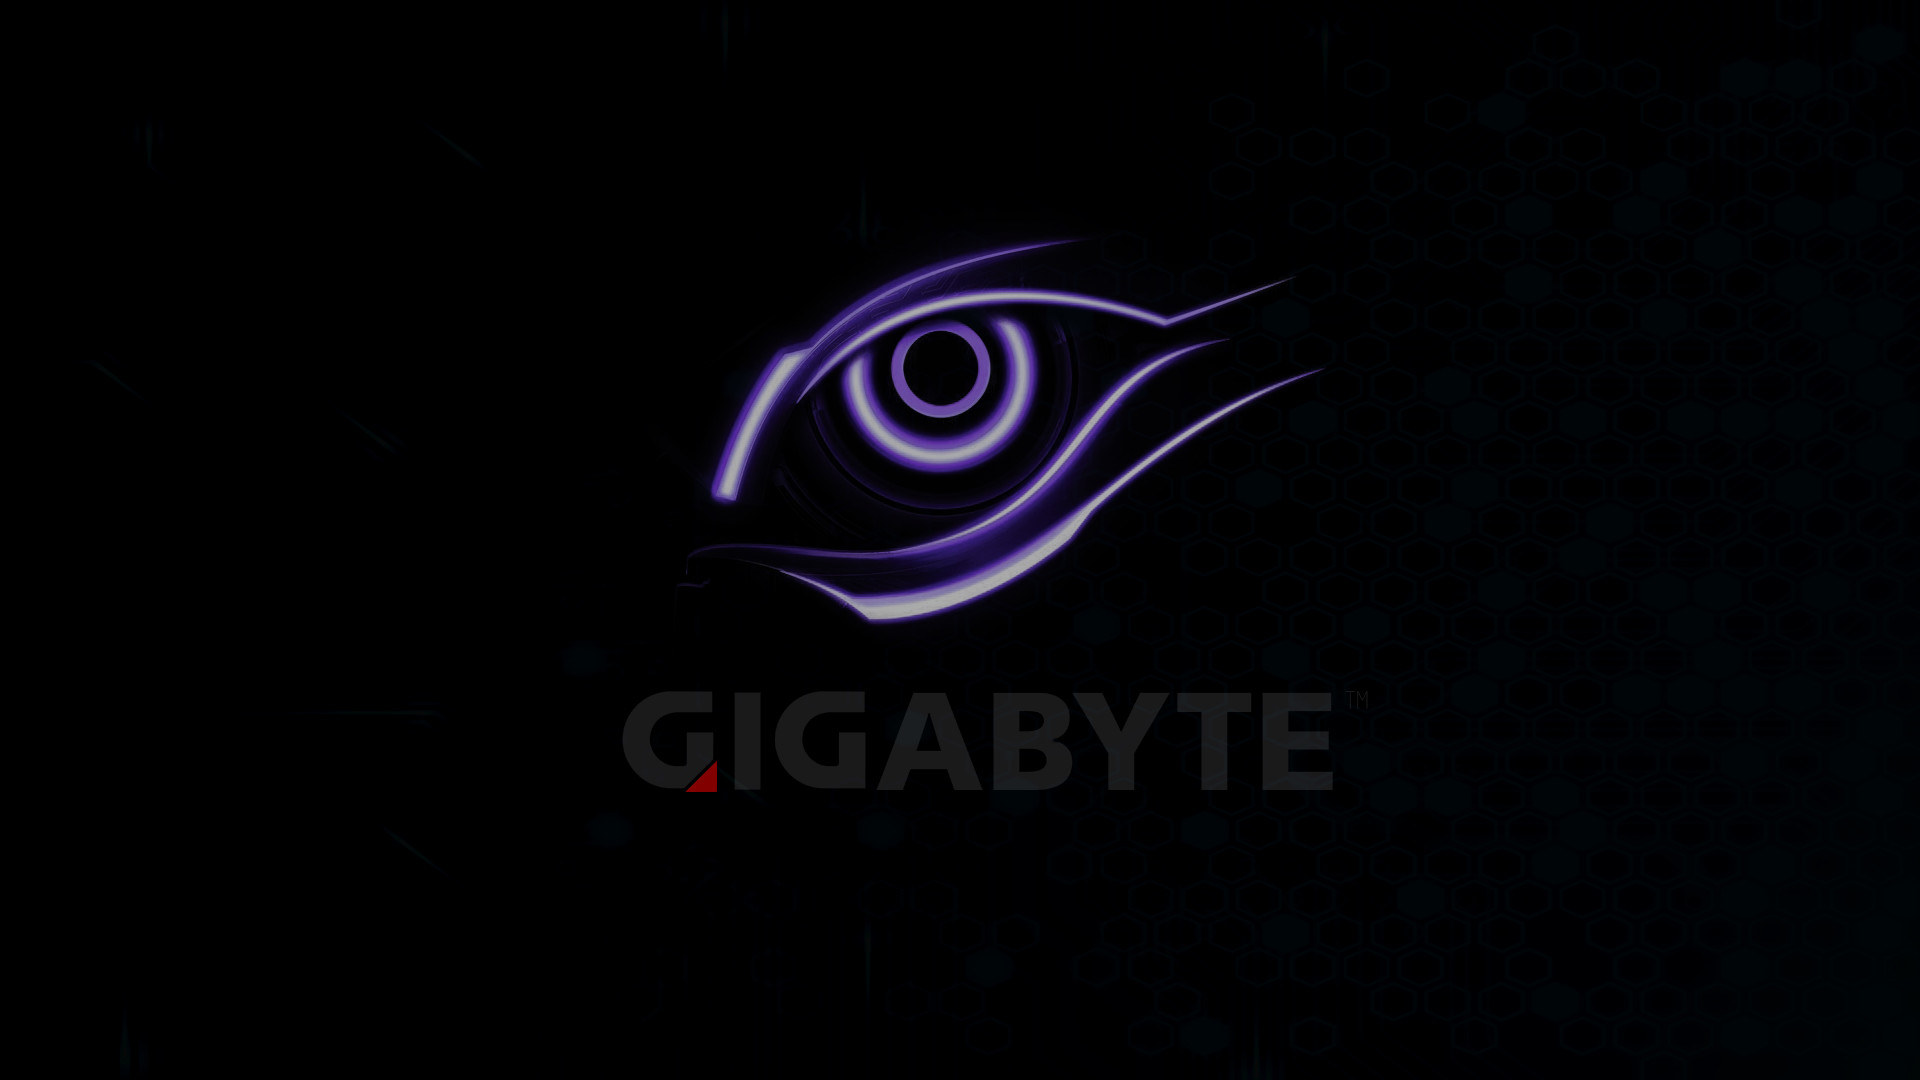 1920x1080 Gigabyte Wallpapers High Quality HD